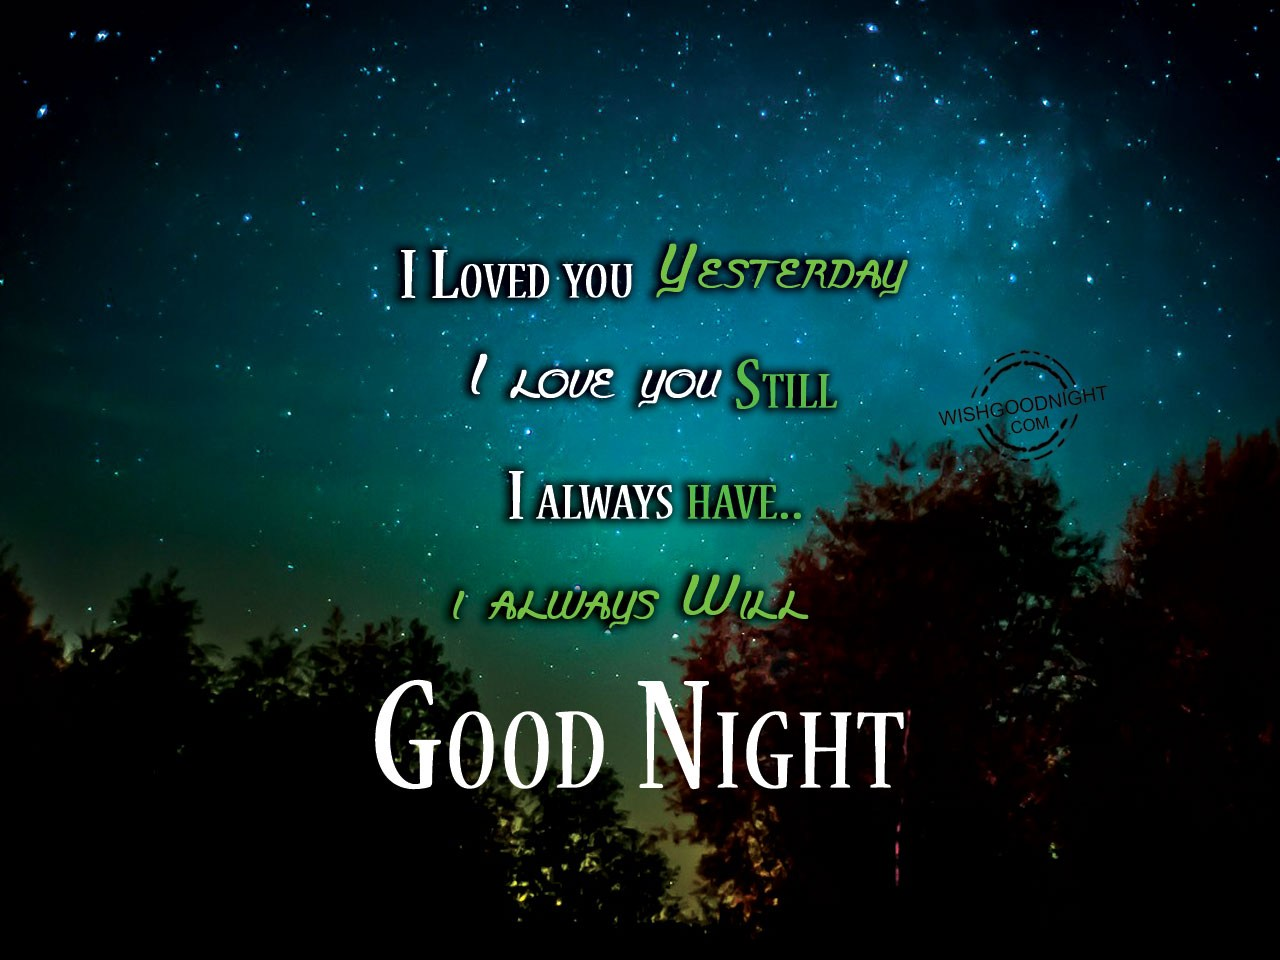 Com good night wishes for boyfriend i loved you yesterday